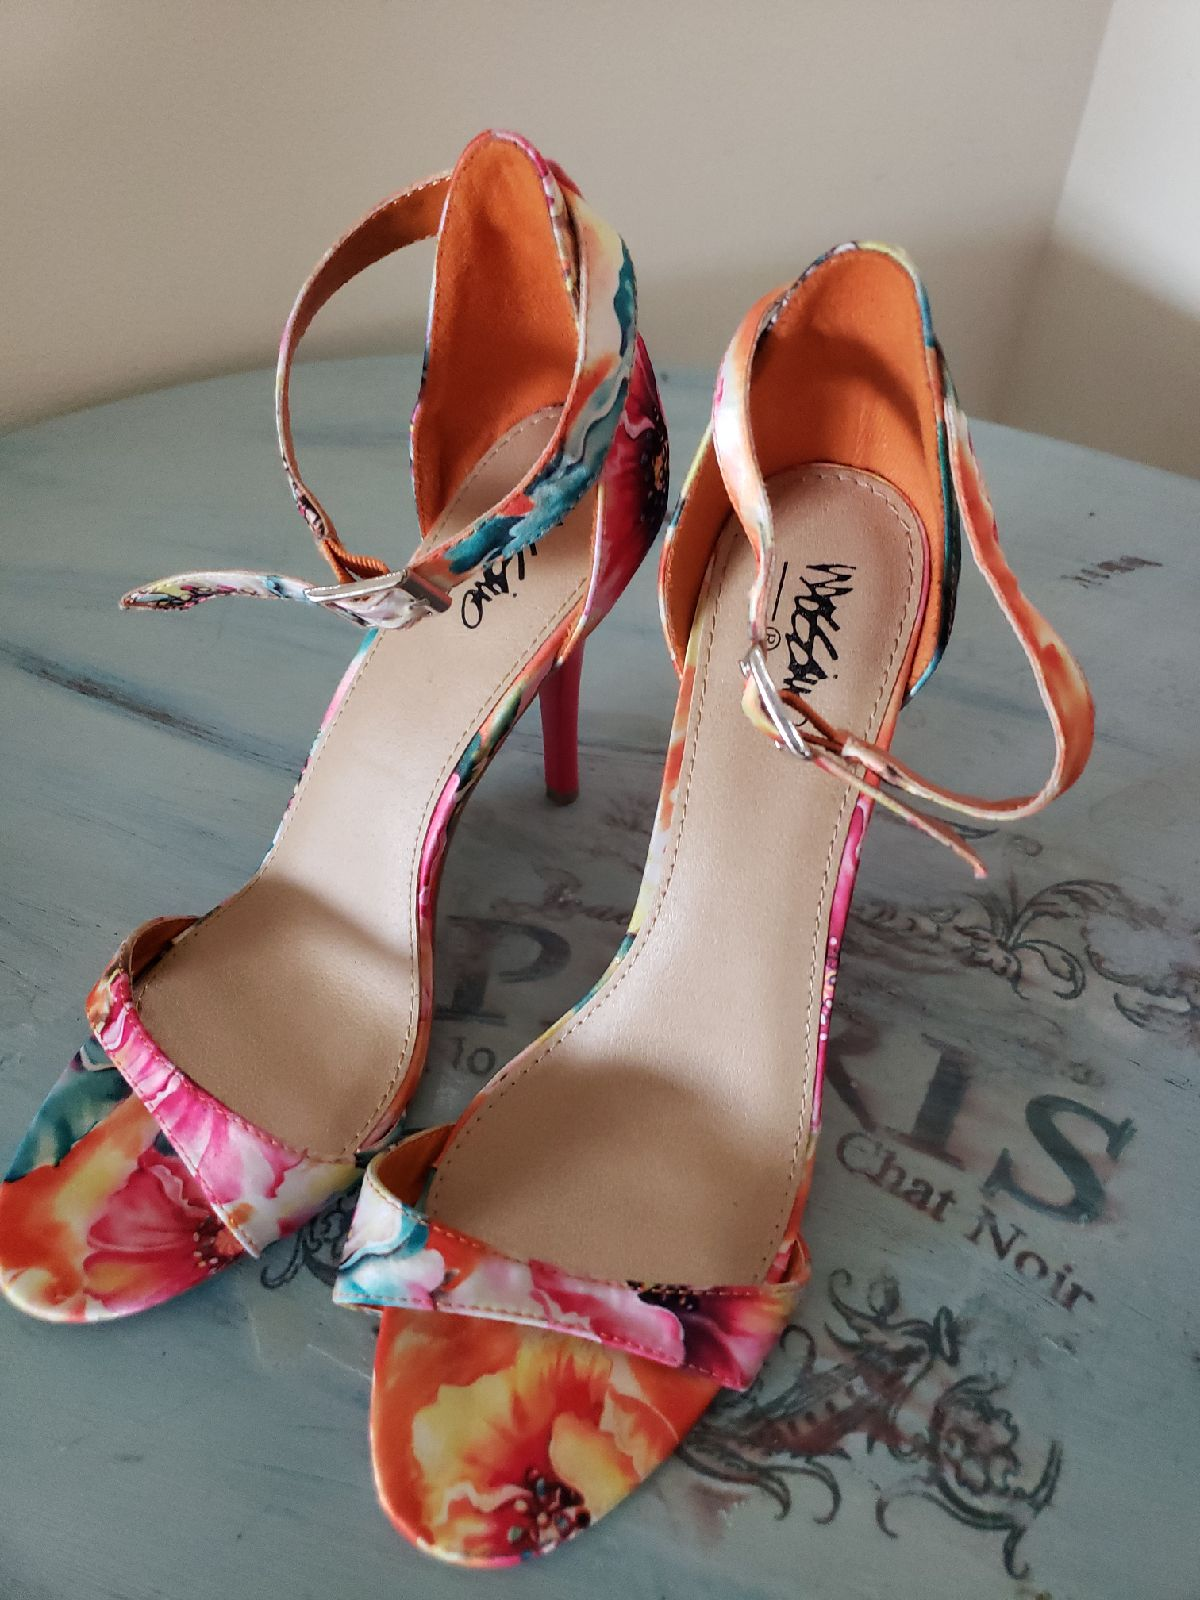 heels Shoes Mossimo womens size 7